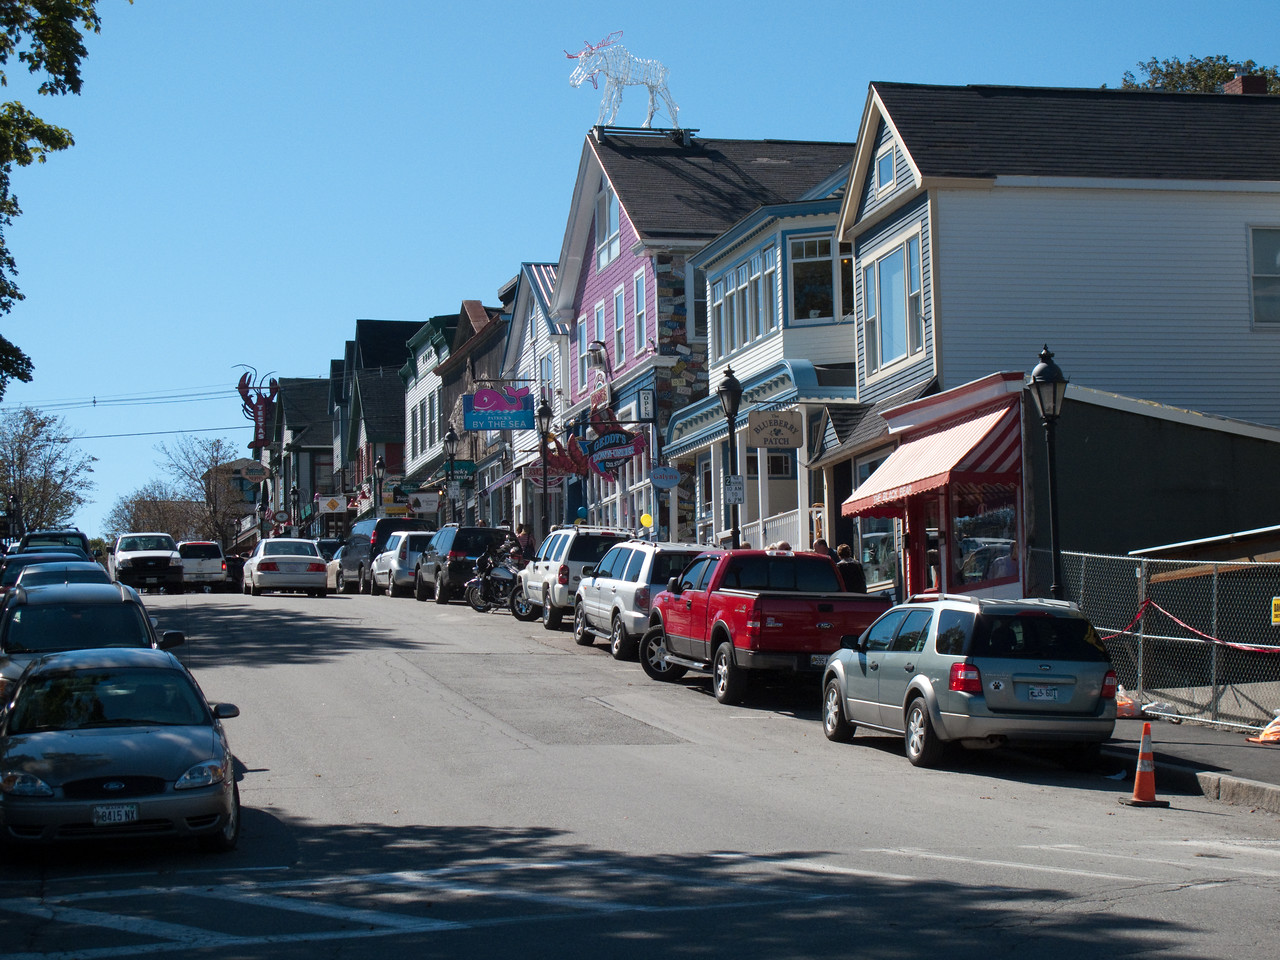 Main street commerce and tourism in Bar Harbor